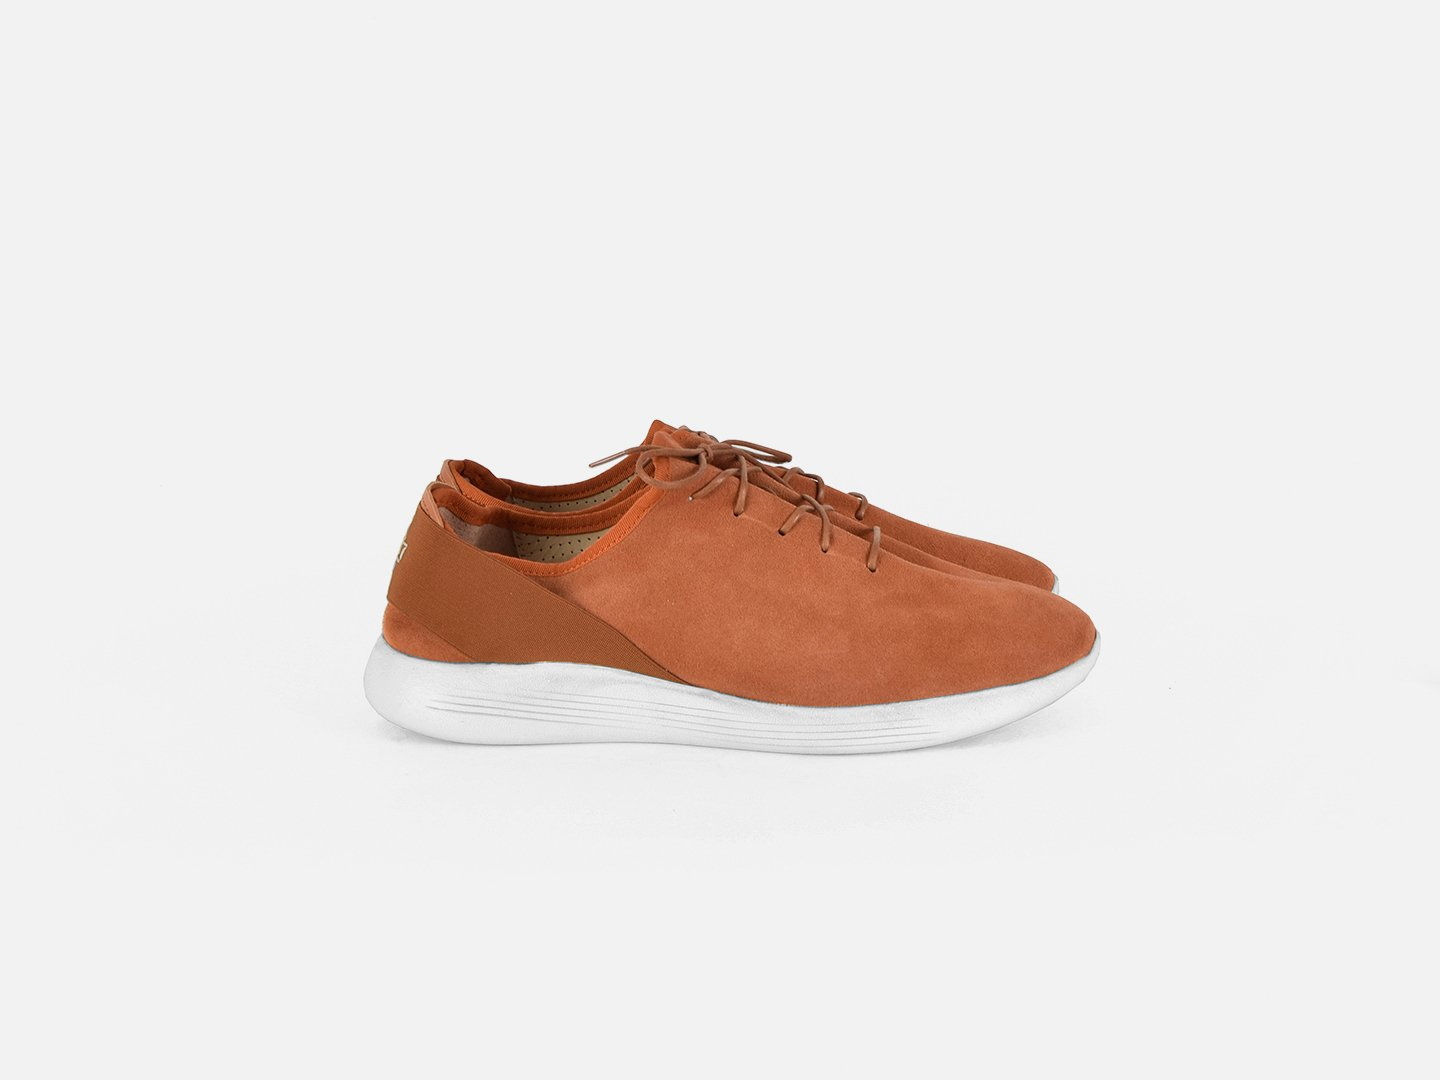 pregis pro sneaker orange suede extralight sole made in Portugal